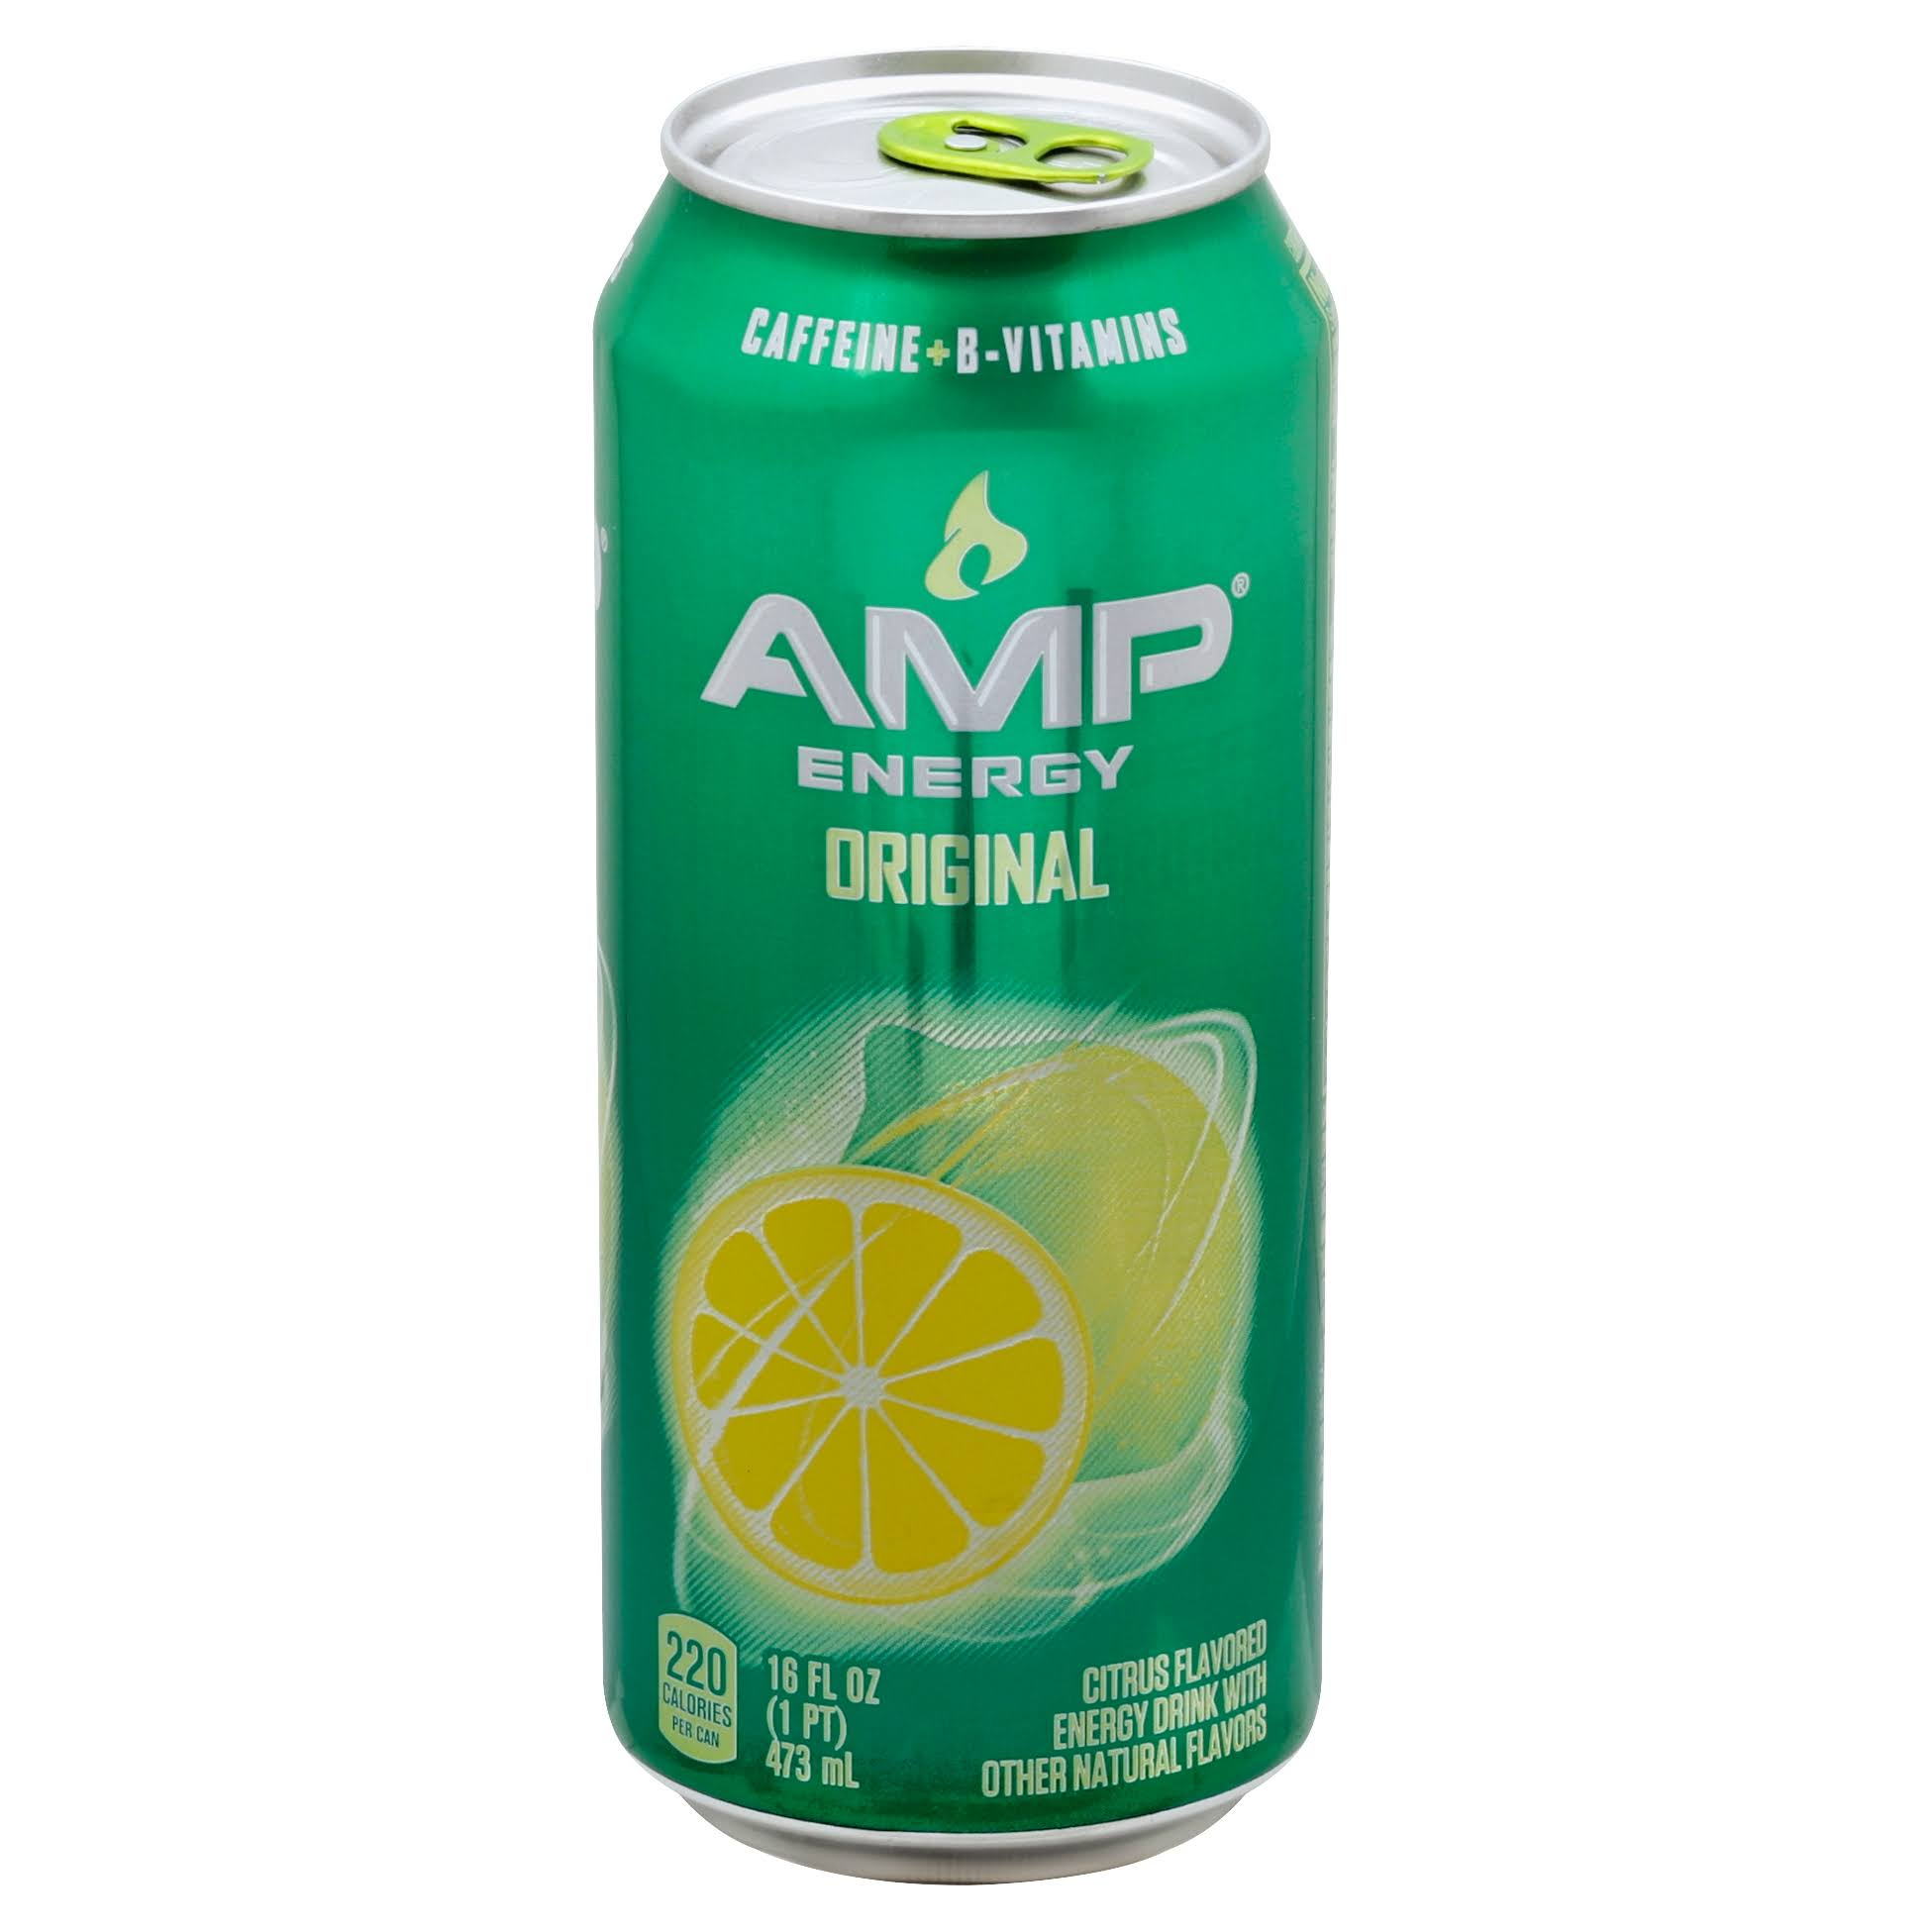 AMP Energy Drink, Original, Citrus Flavored - 16 fl oz